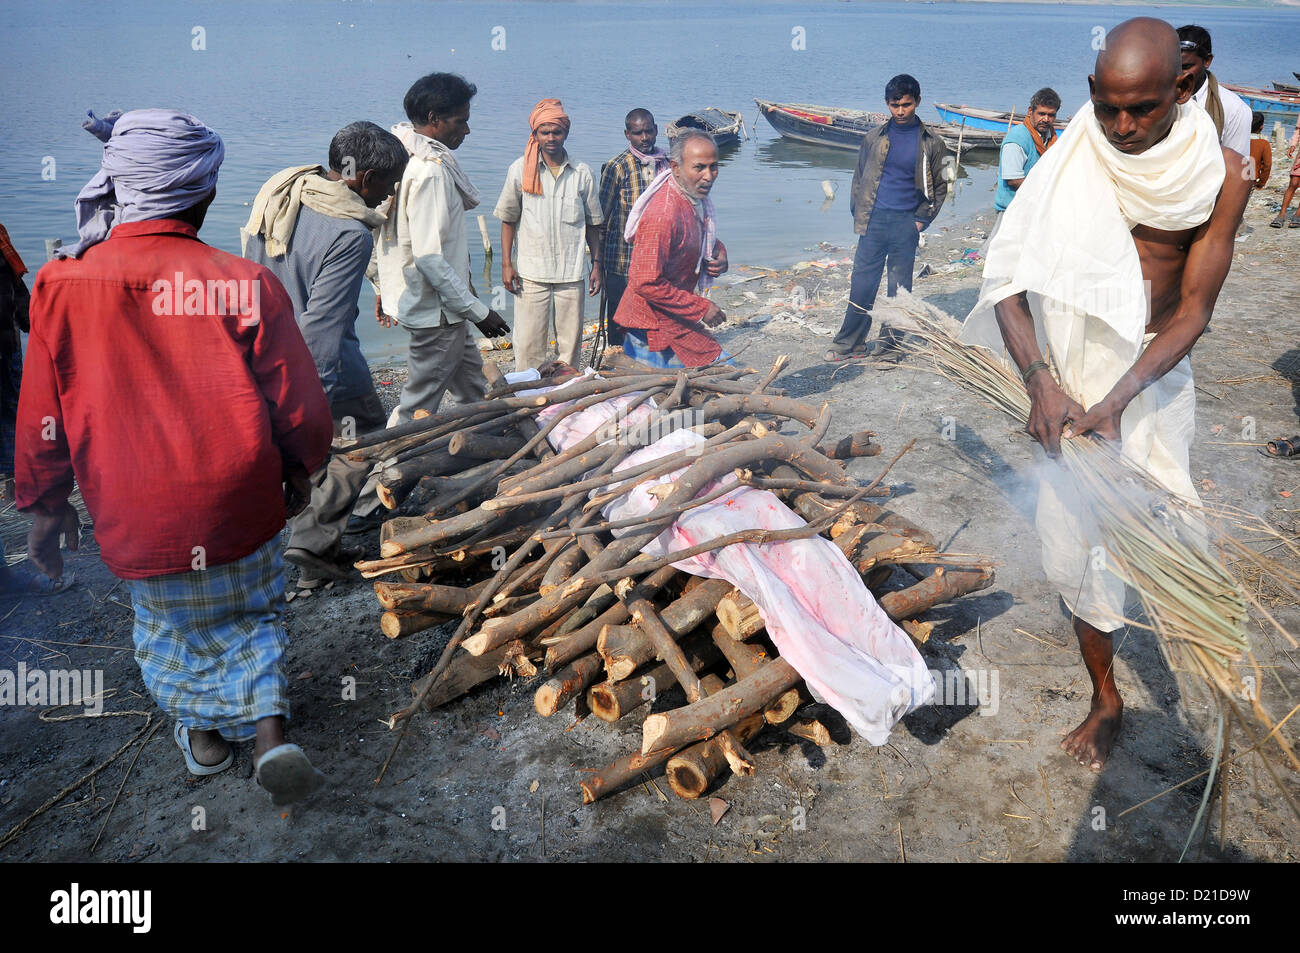 A cremation ritual on the banks of the Ganges. - Stock Image